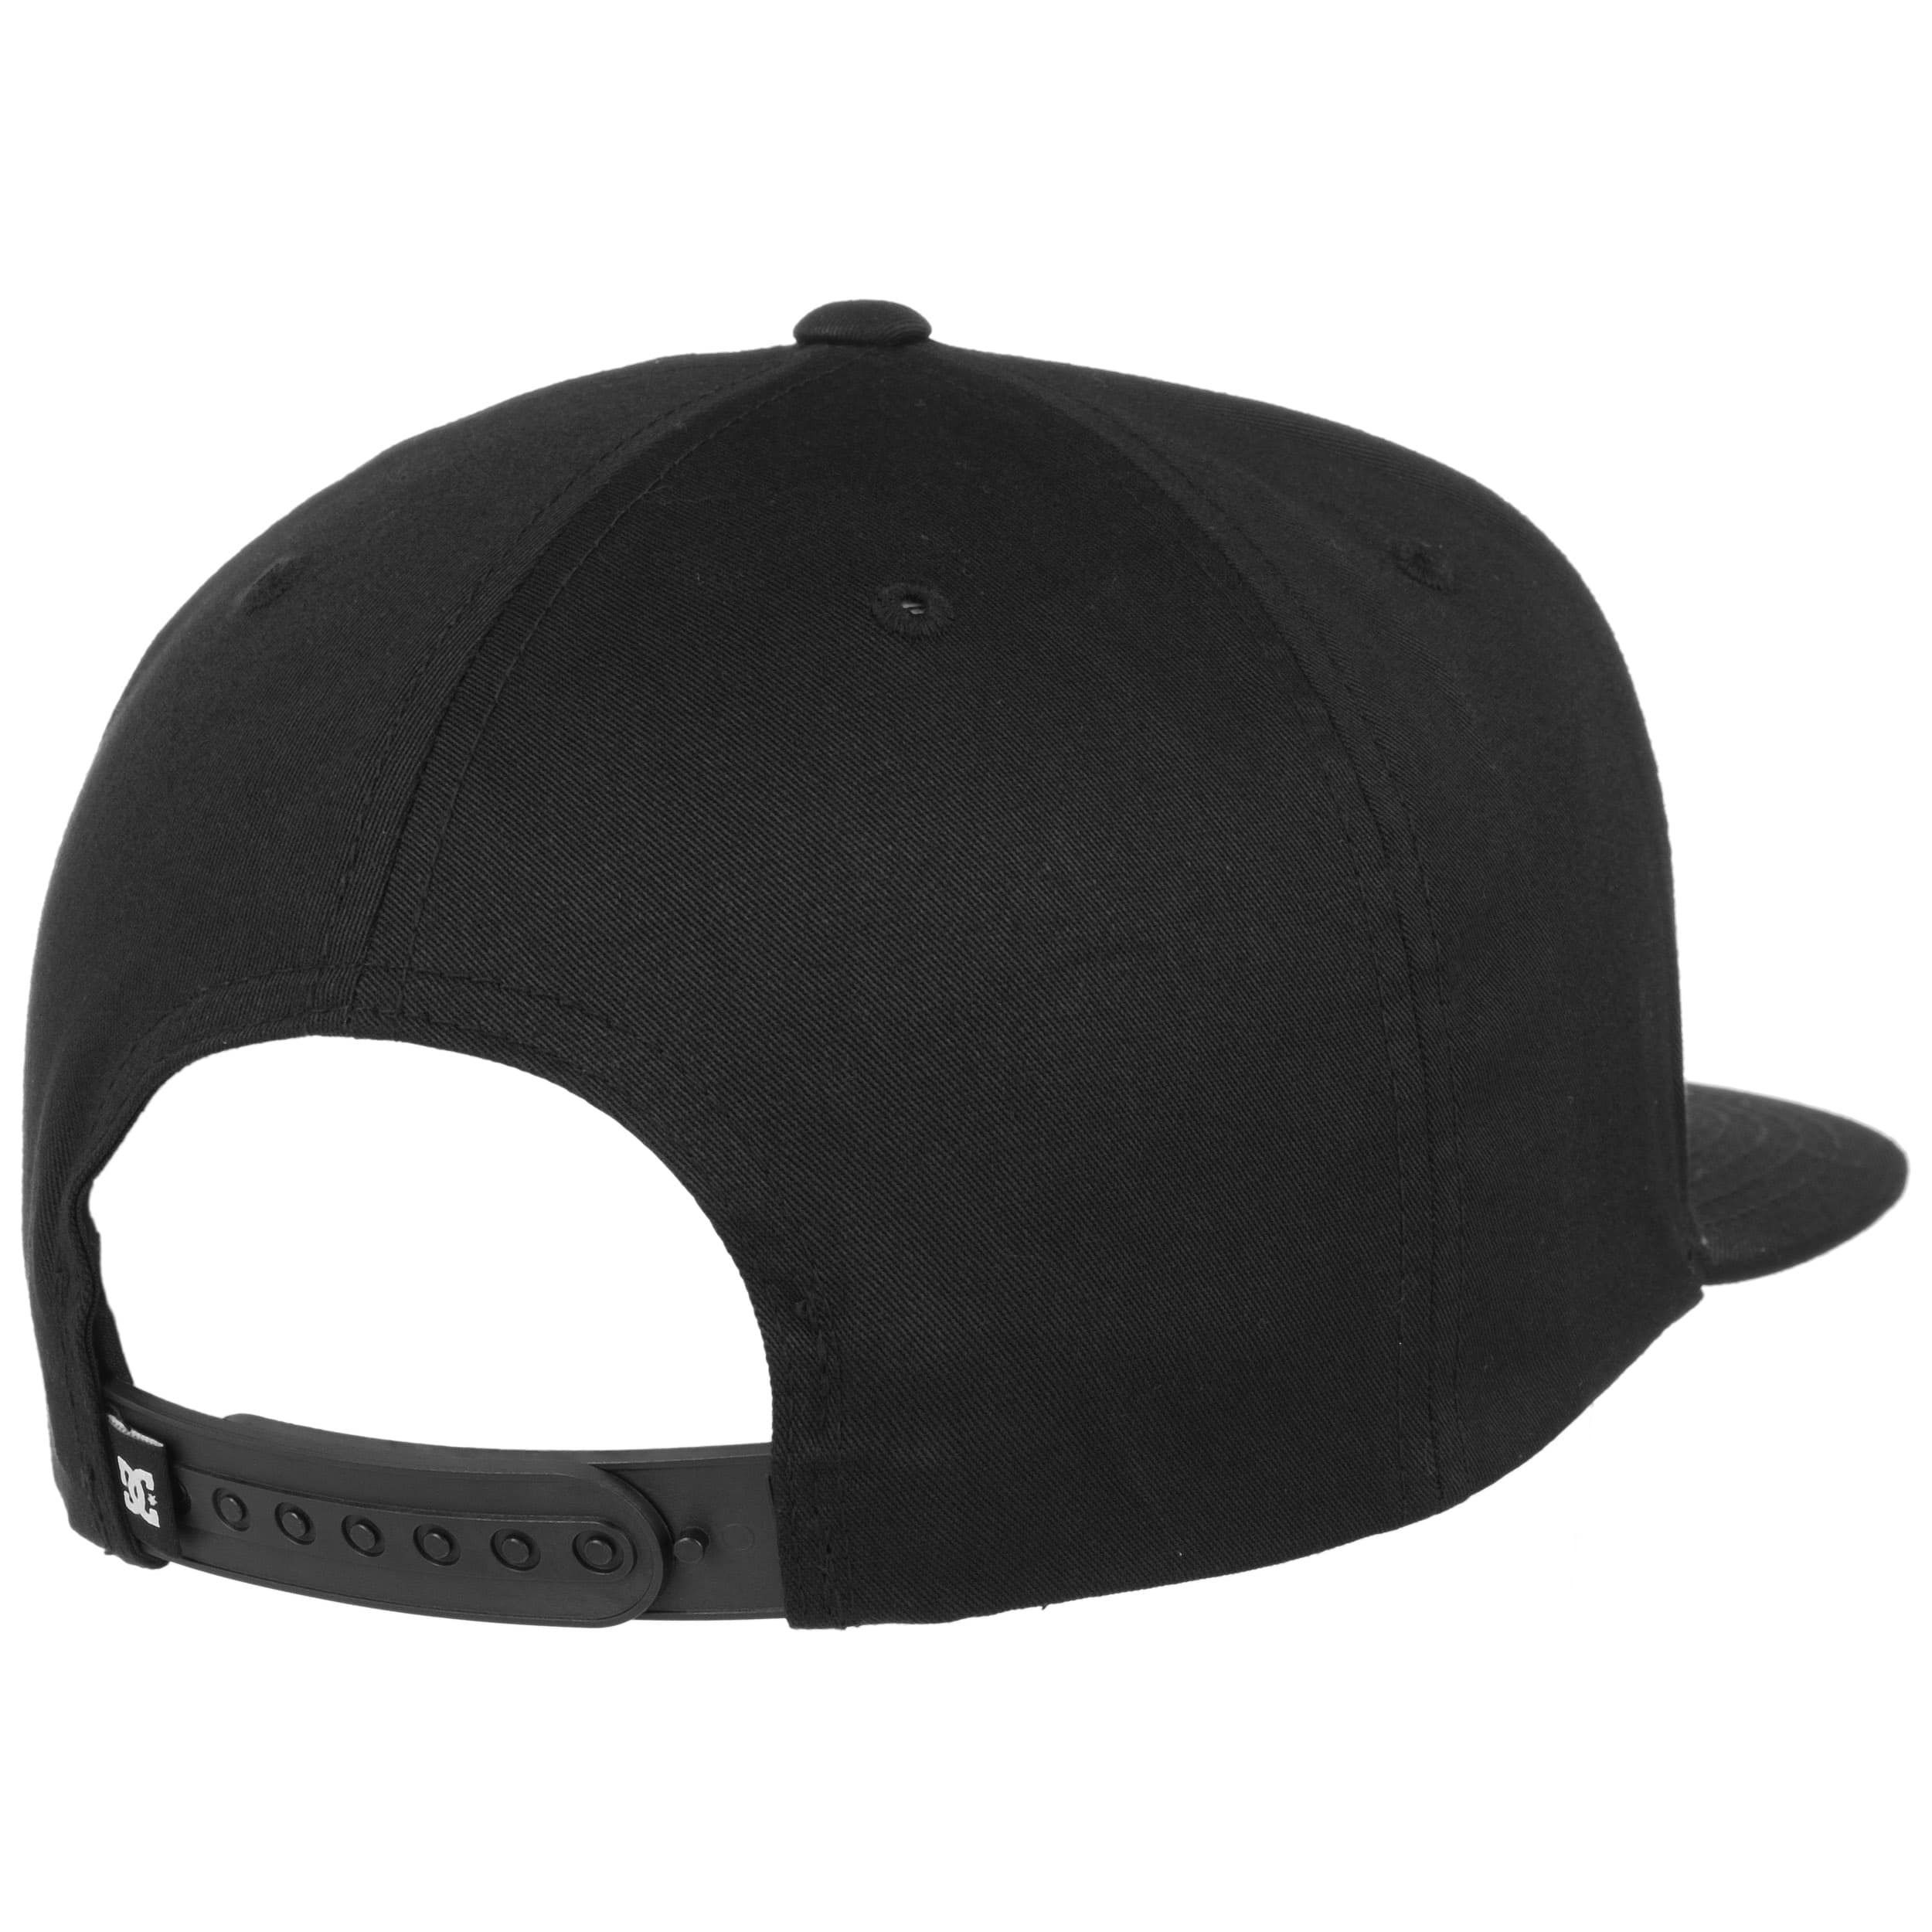 580e41336a2db Gorra Snapback Snappy by DC Shoes Co - Gorras - sombreroshop.es